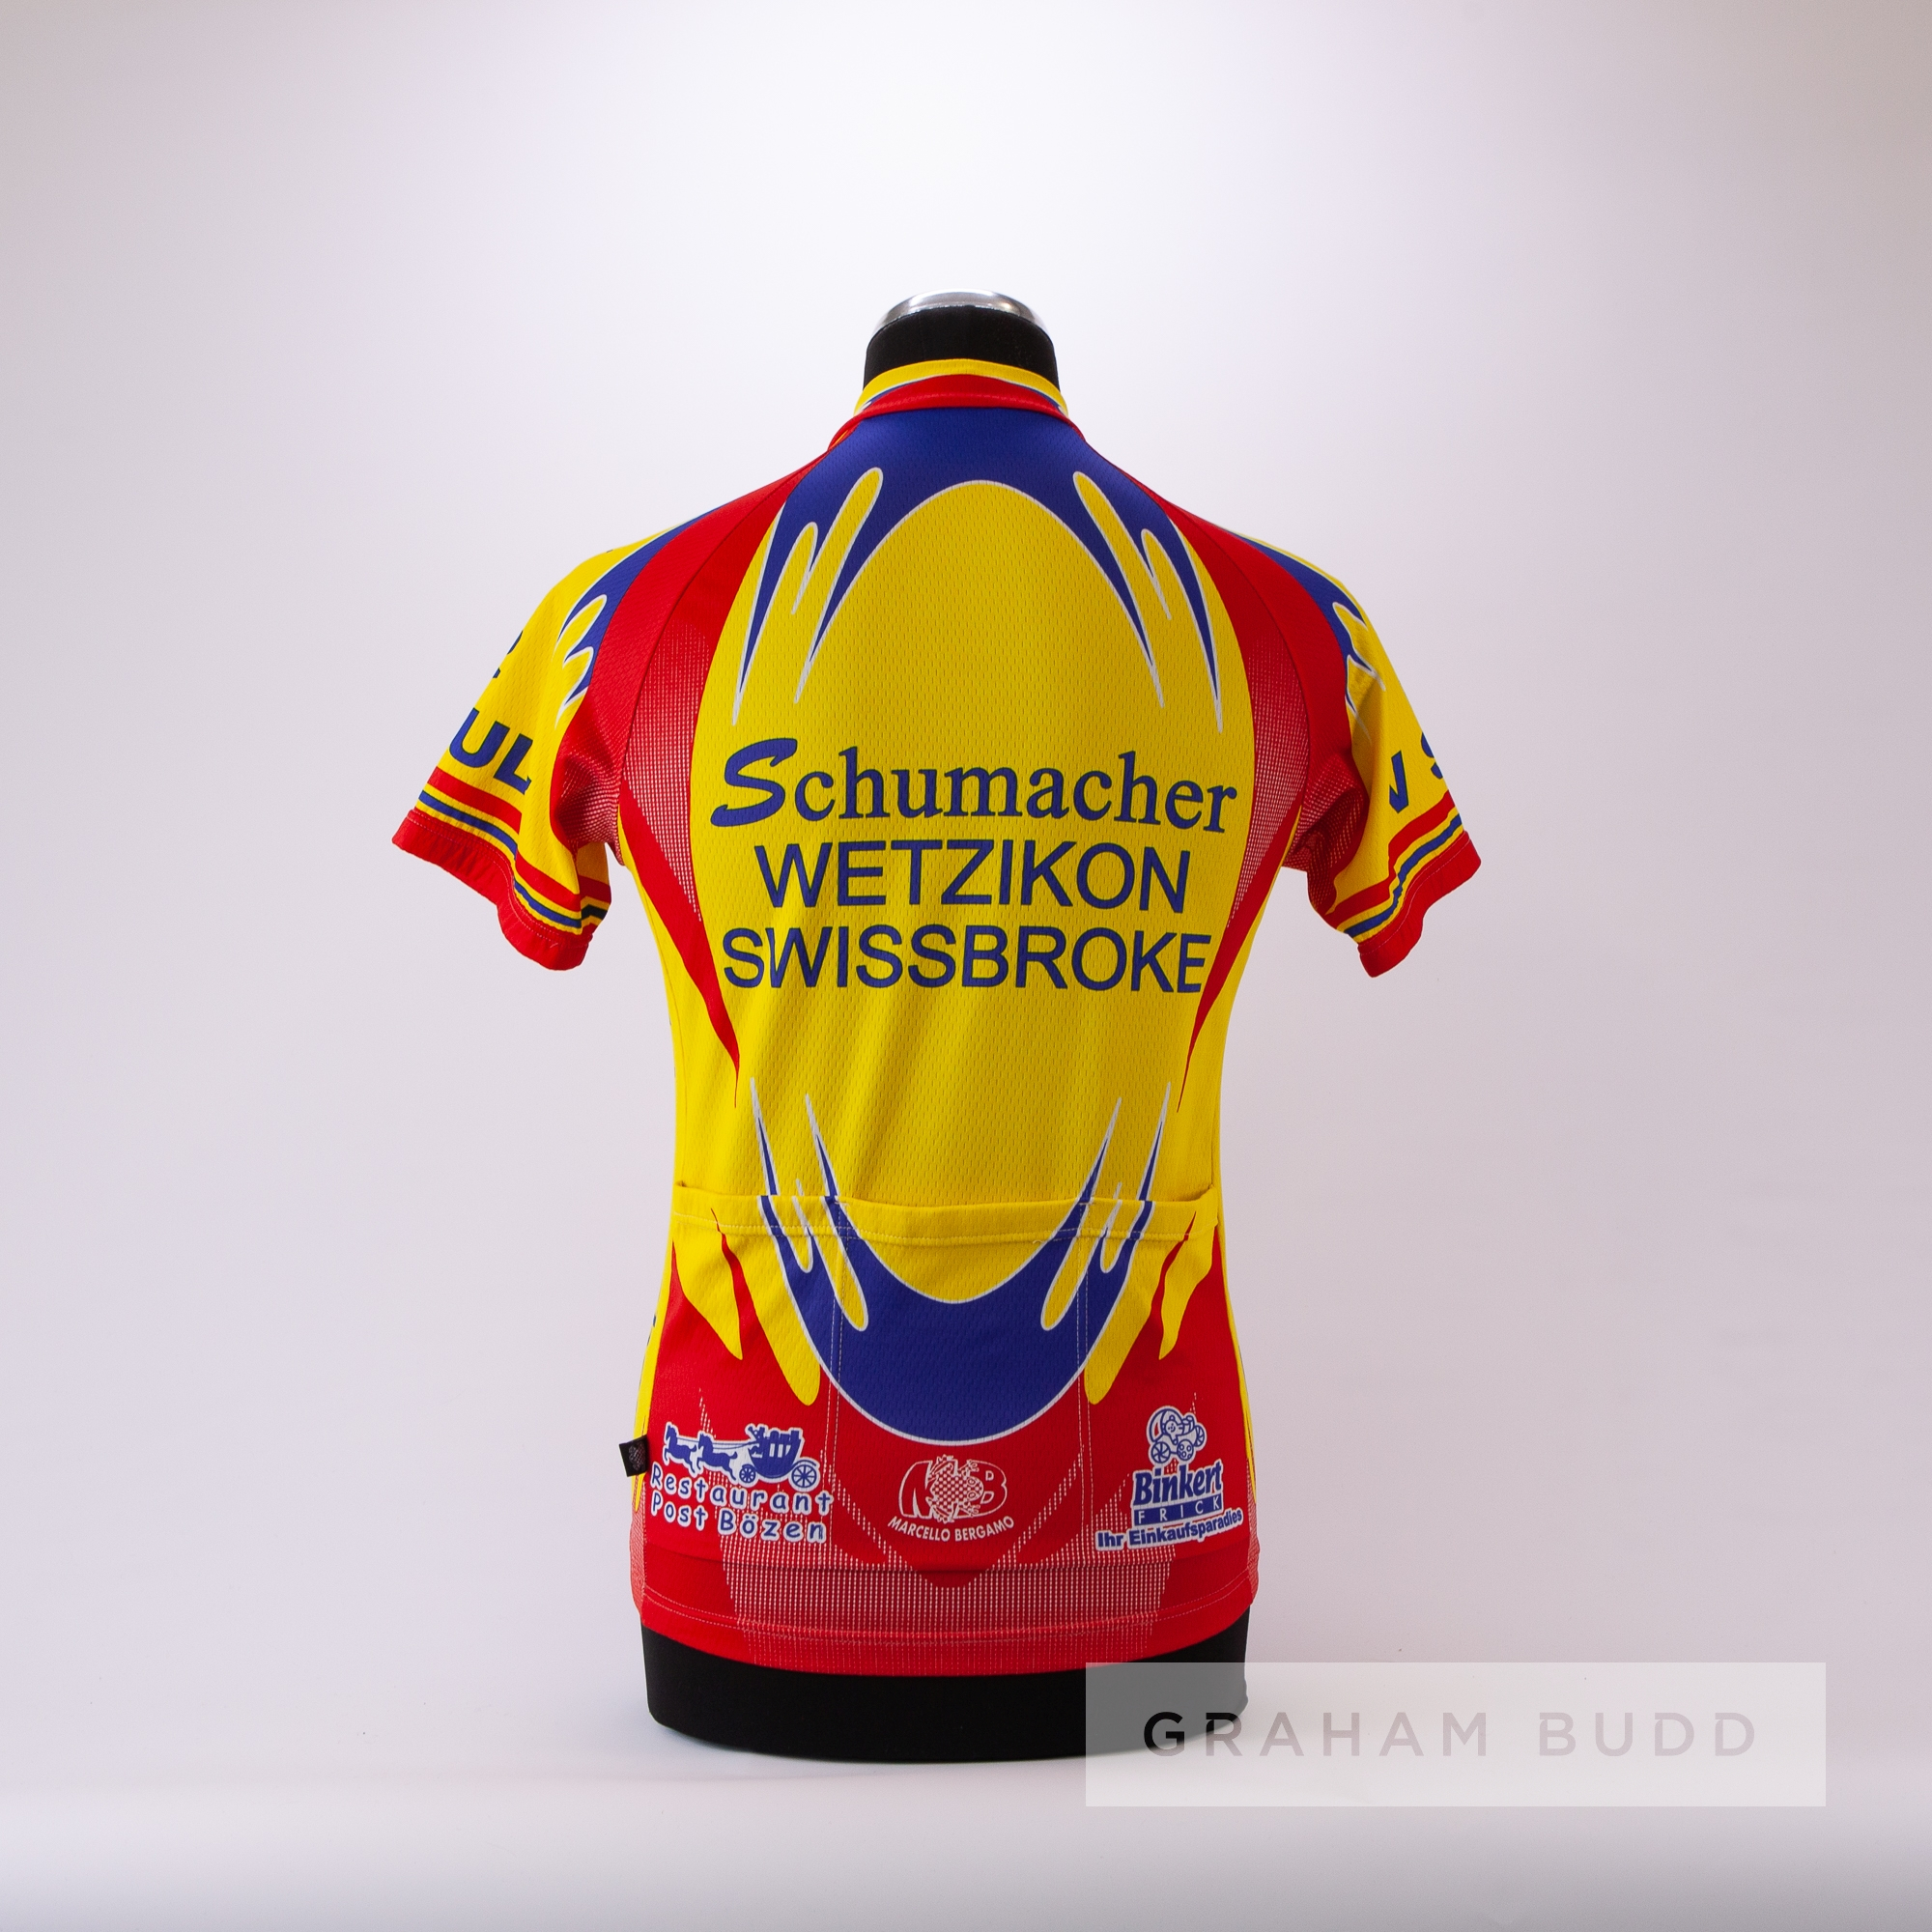 2006 yellow, red and blue WetzIkon SwissBroke Cycling race jersey in the style worn by Stefan - Image 4 of 4